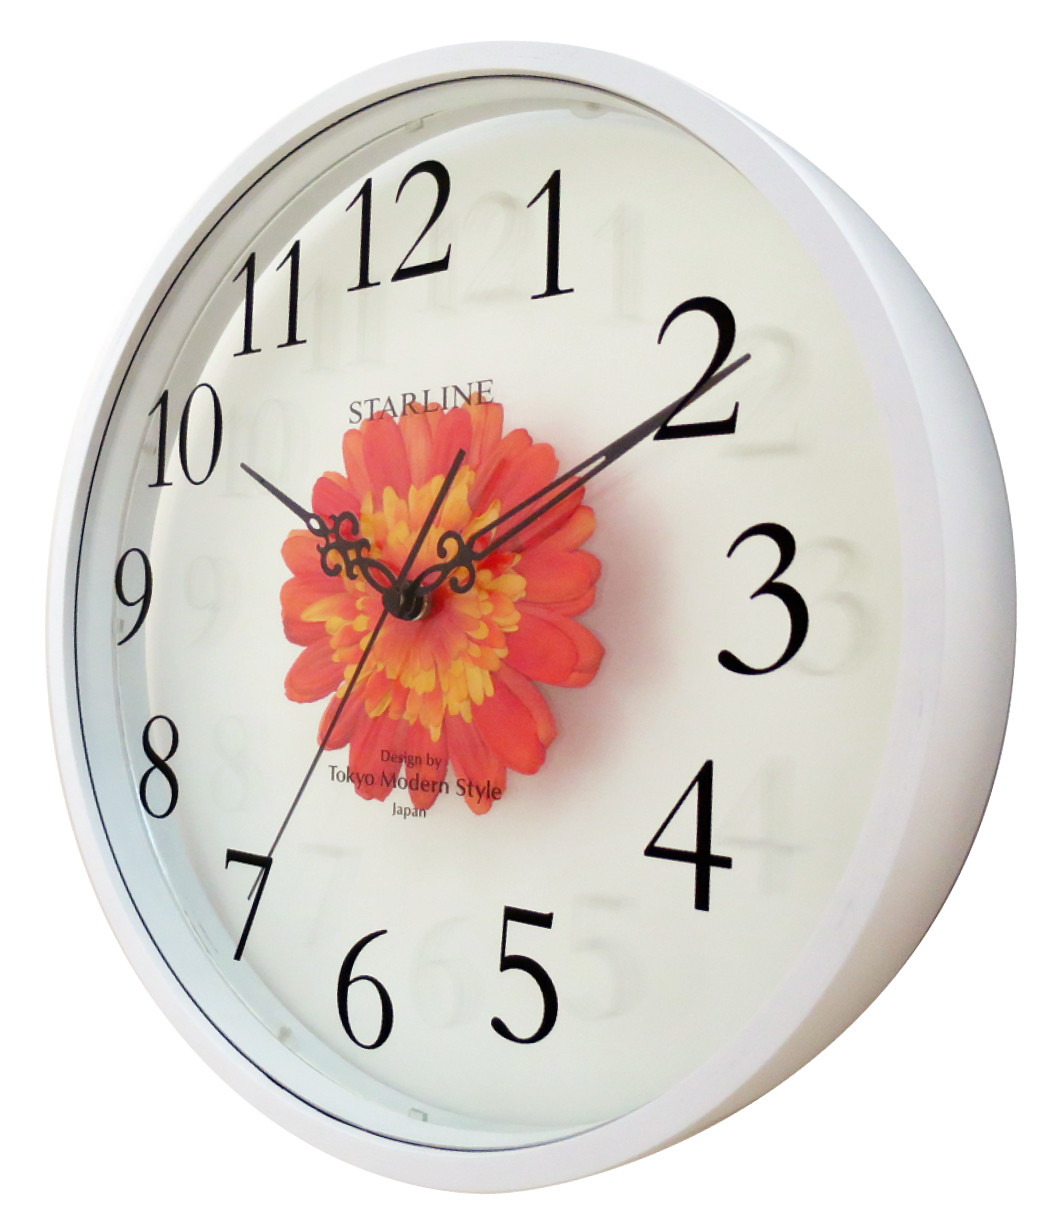 Art Flower Clock Wall Clock | Export Japanese products to the world